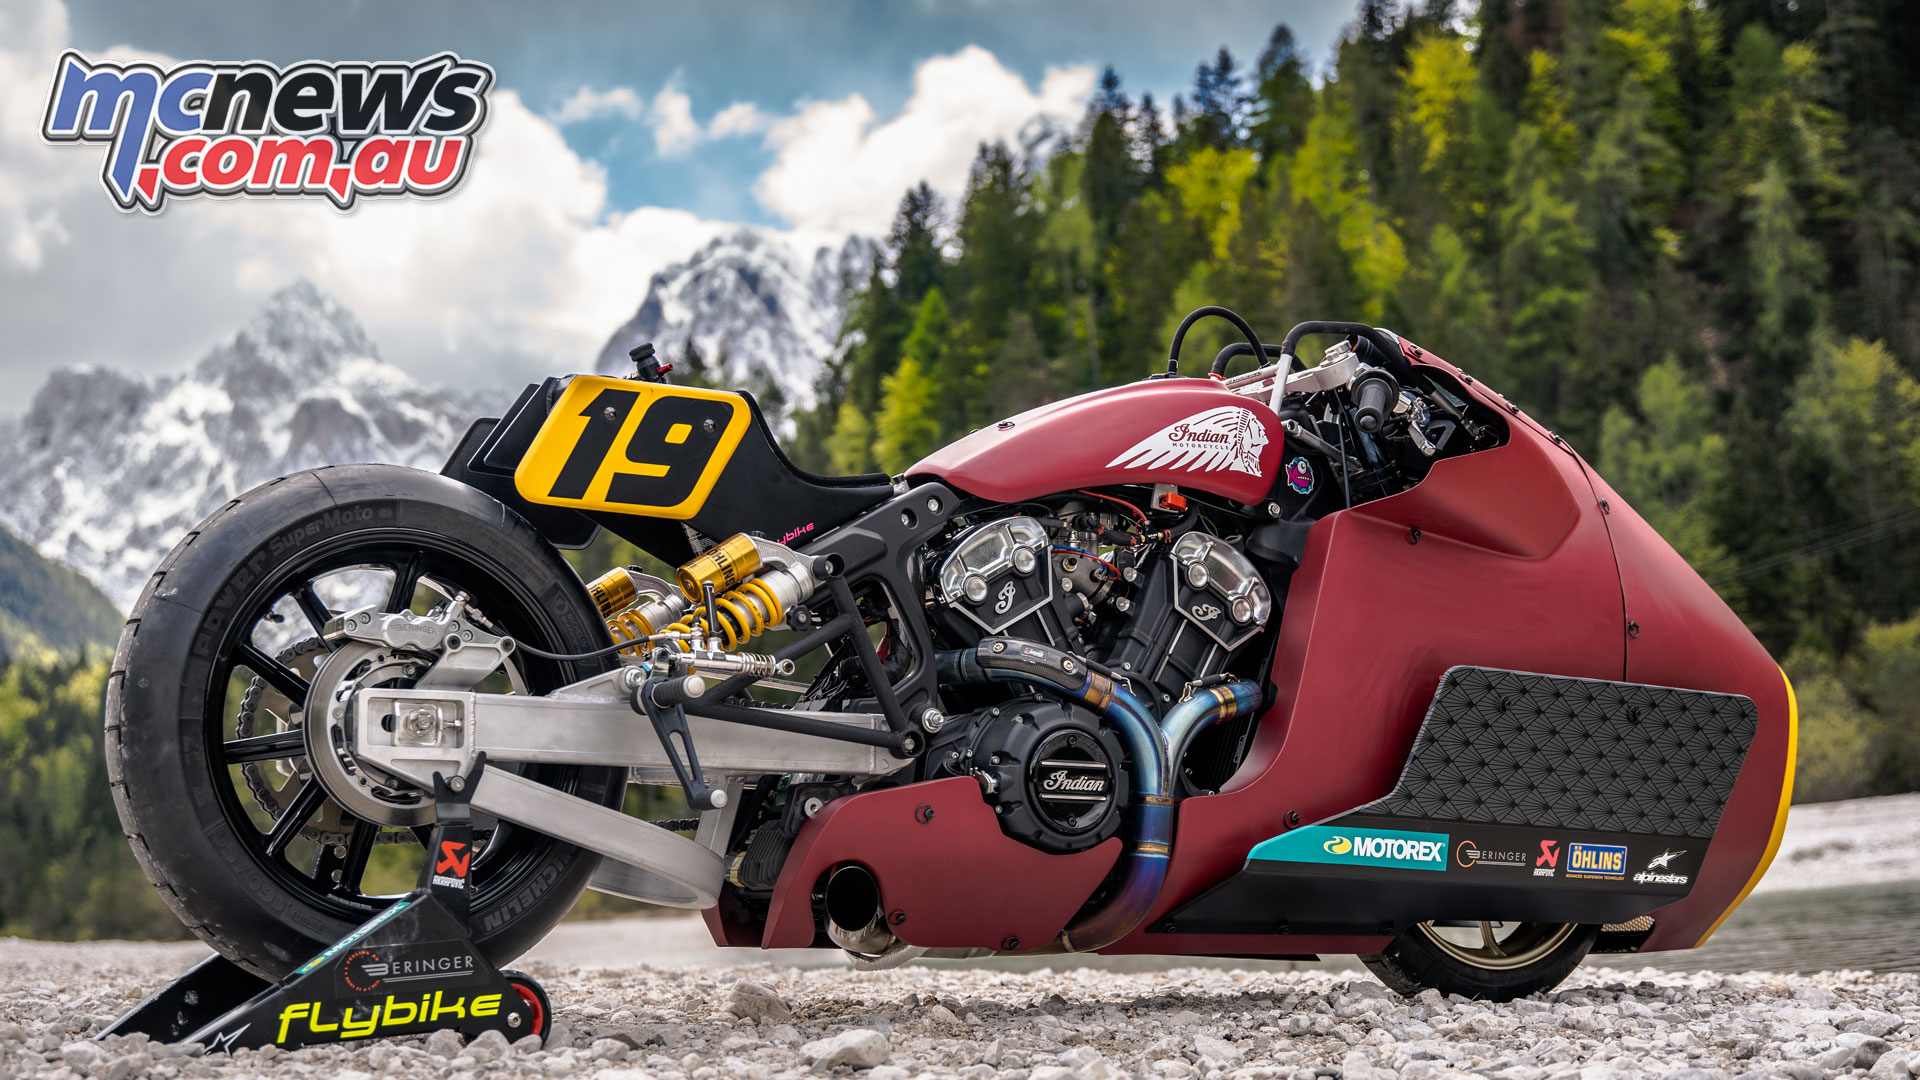 Mamola to race Sultans of Sprint on custom Scout Bobber